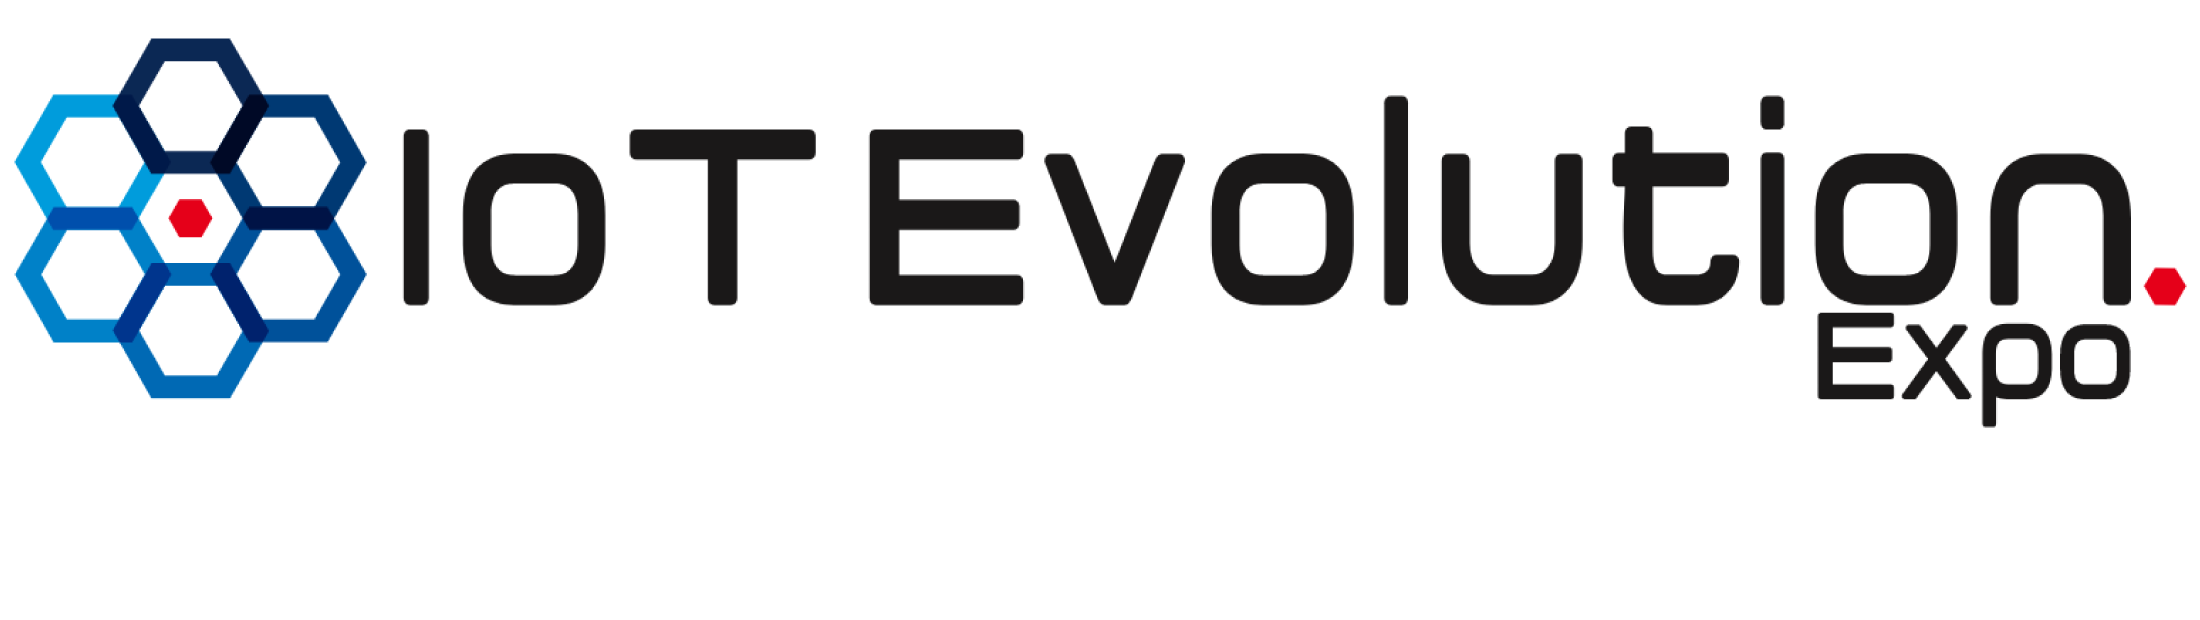 IoTEvolution2020-logo-LP-1